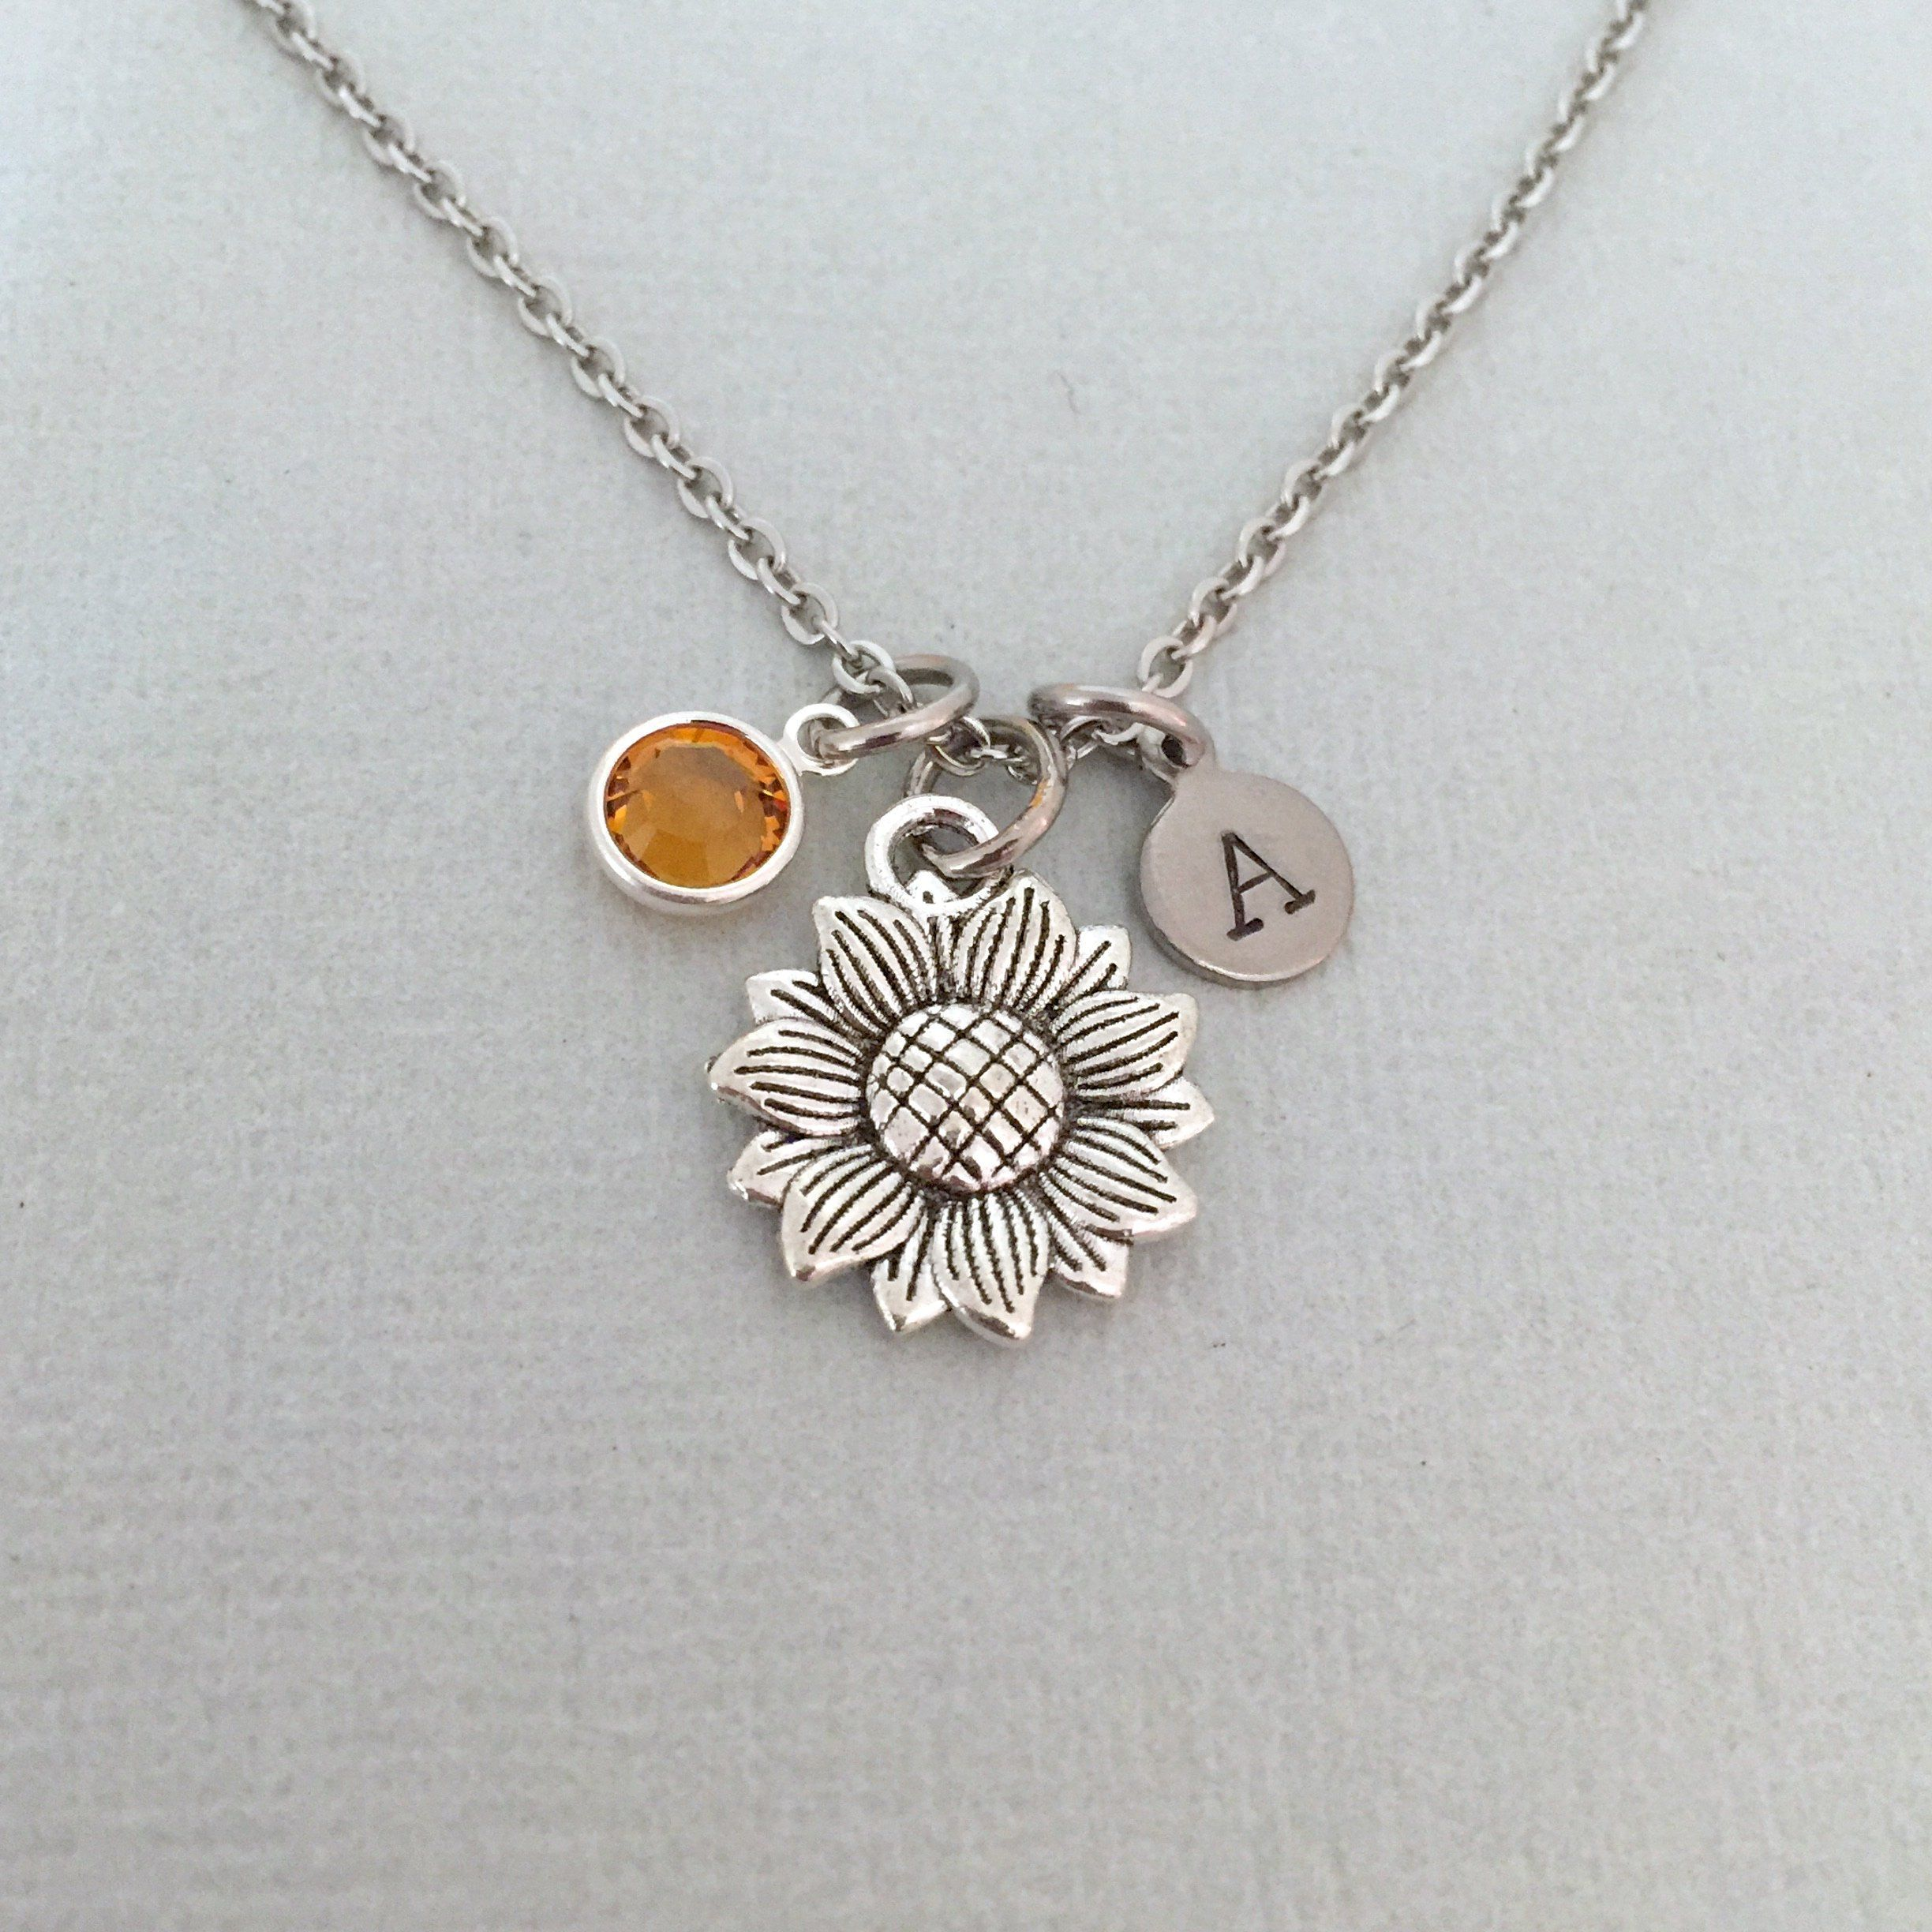 initial necklace flower jewelry flower necklace personalized necklace sunflower jewelry Sunflower charm necklace